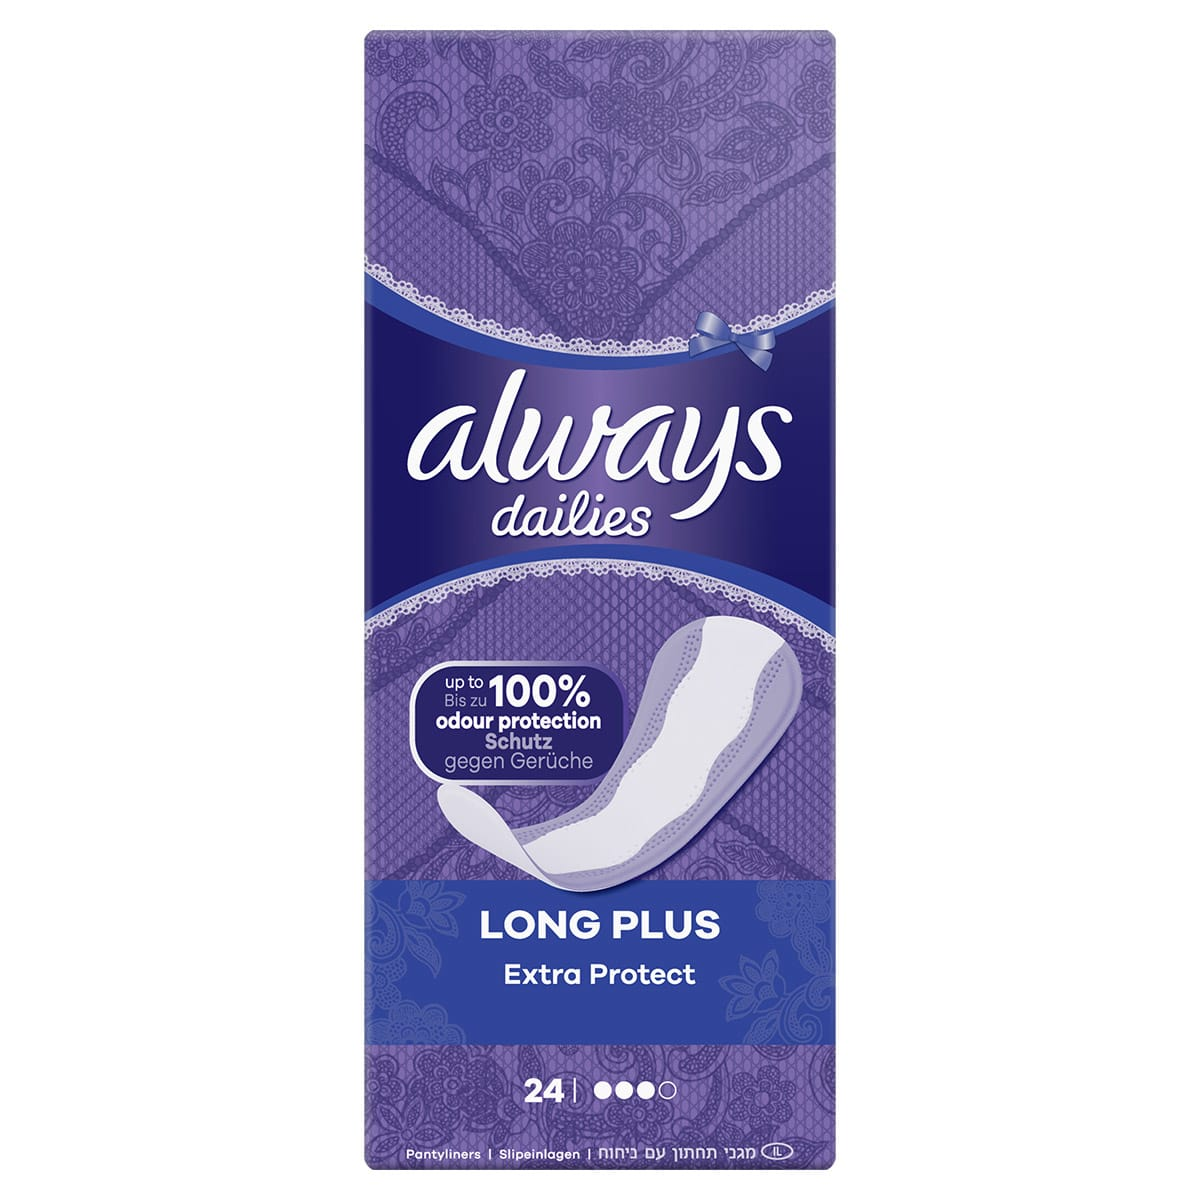 Extra Protect Long Plus 24ct